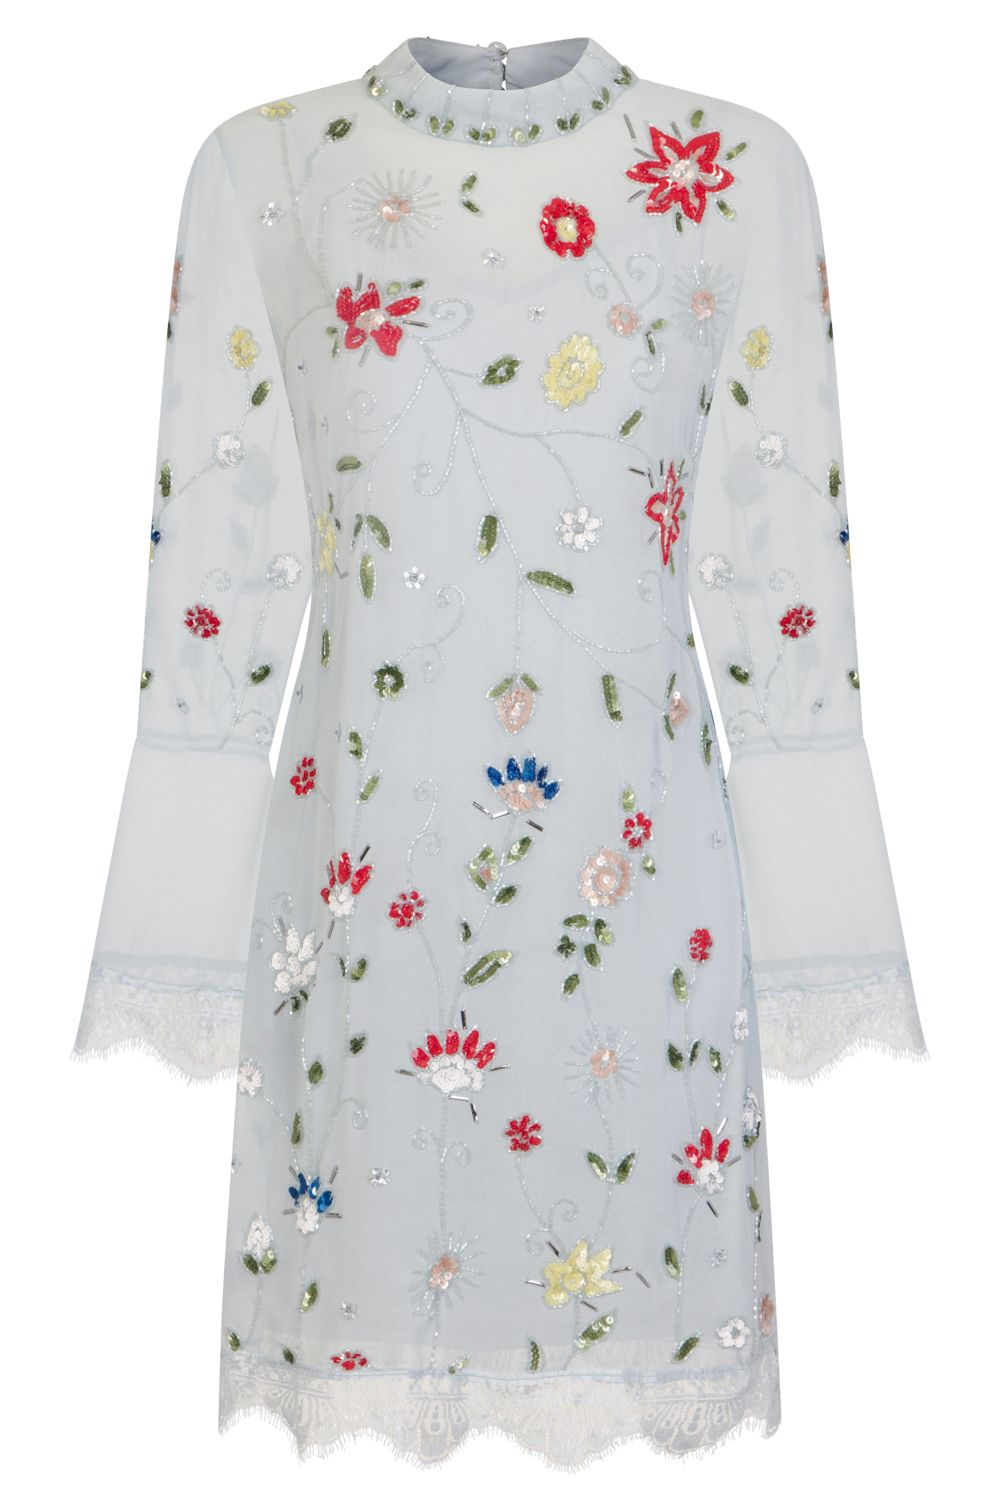 Frock and frill felixa light blue long sleeve mini floral dress